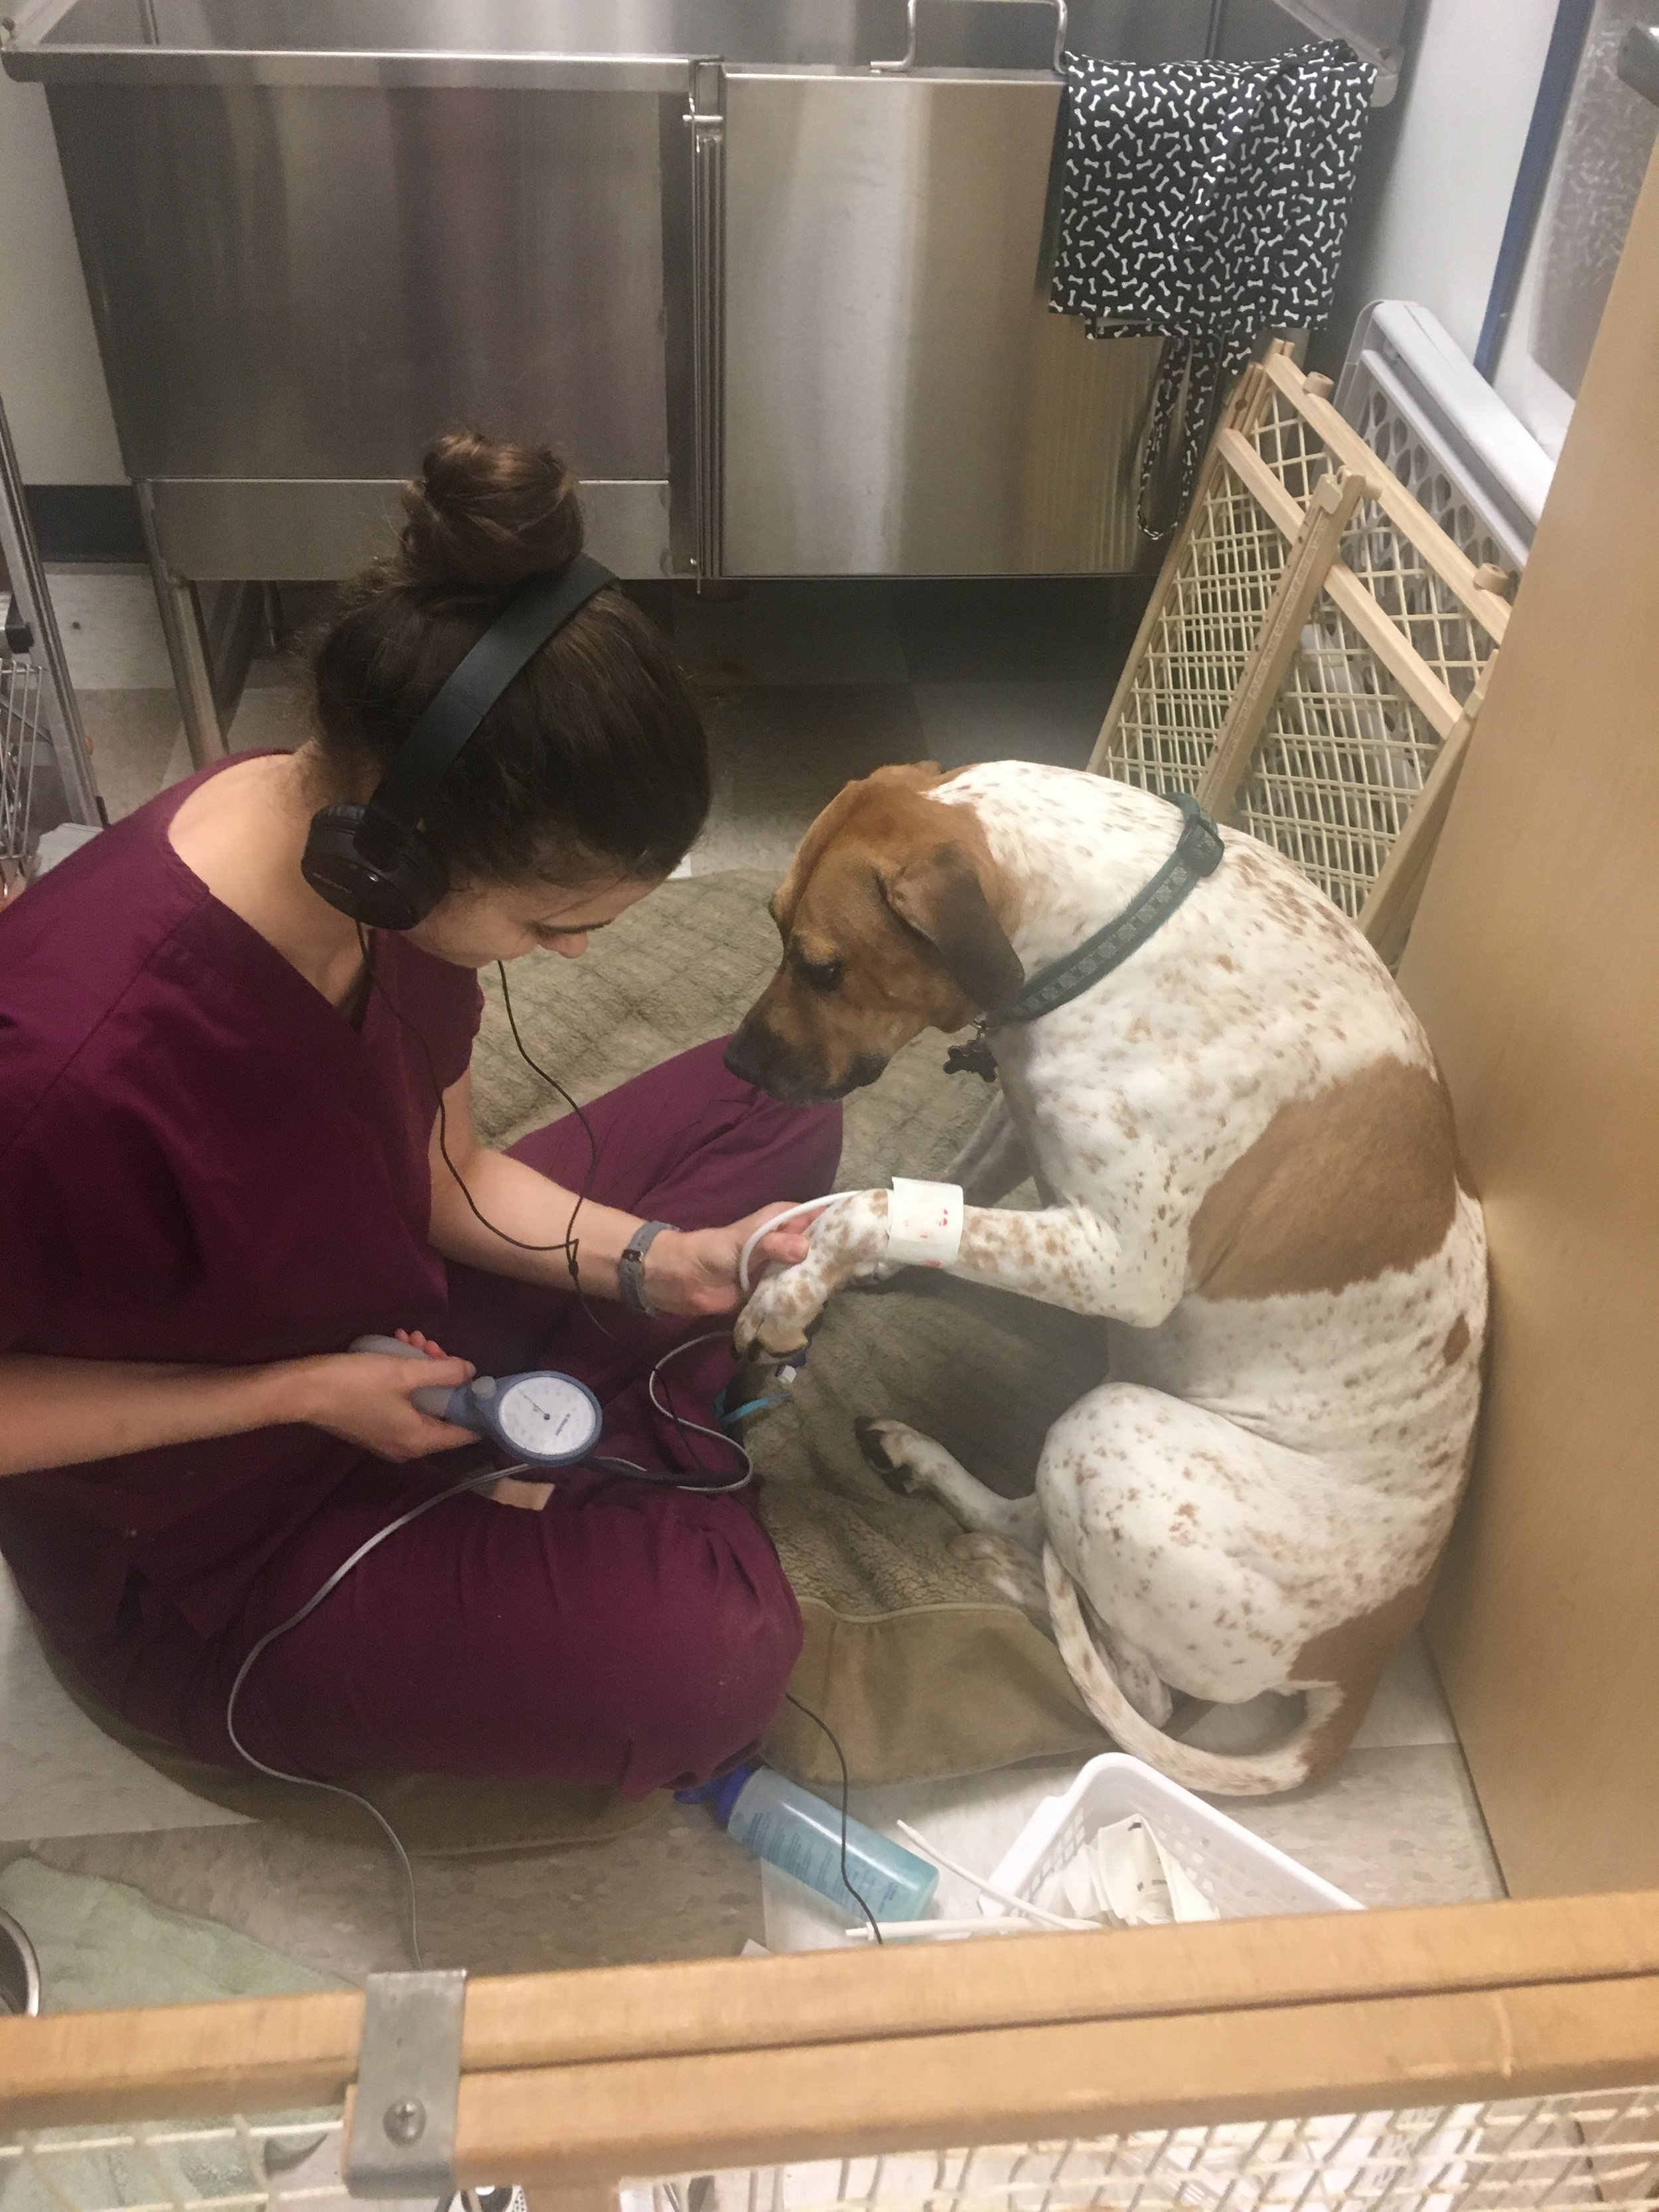 Clarendon Animal Care Veterinary Clinic Arlington Virginia staff getting a blood pressure on a dog